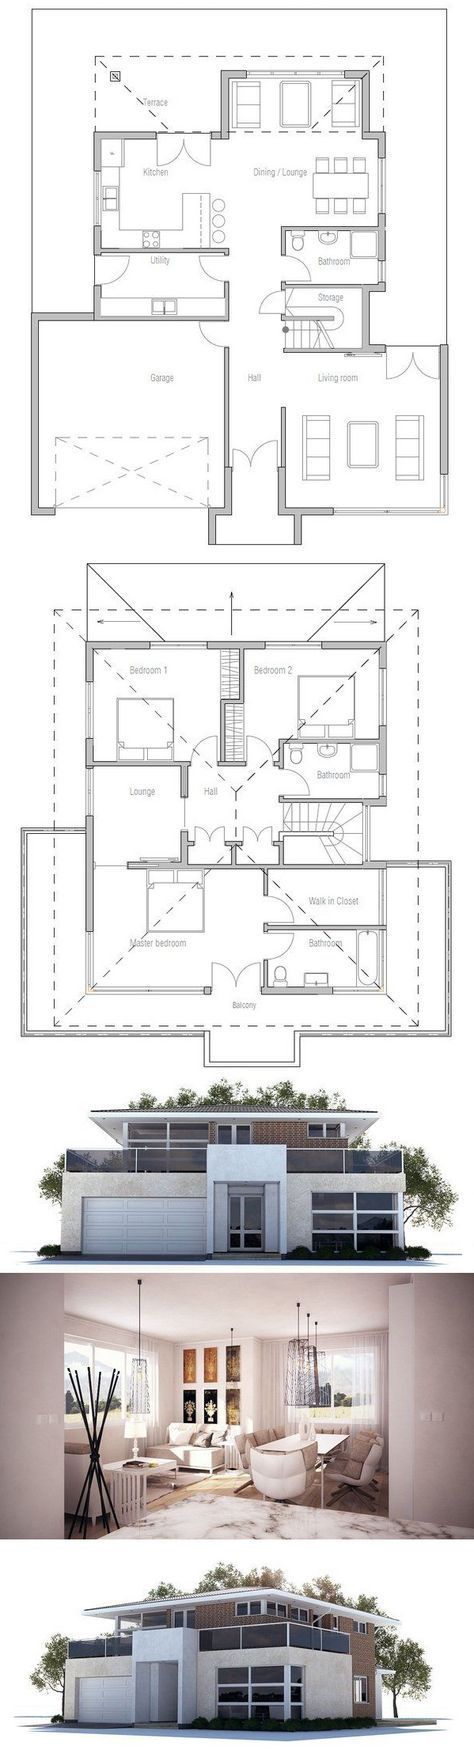 House Plan Drawing Design Roomraleigh kitchen cabinets Nice